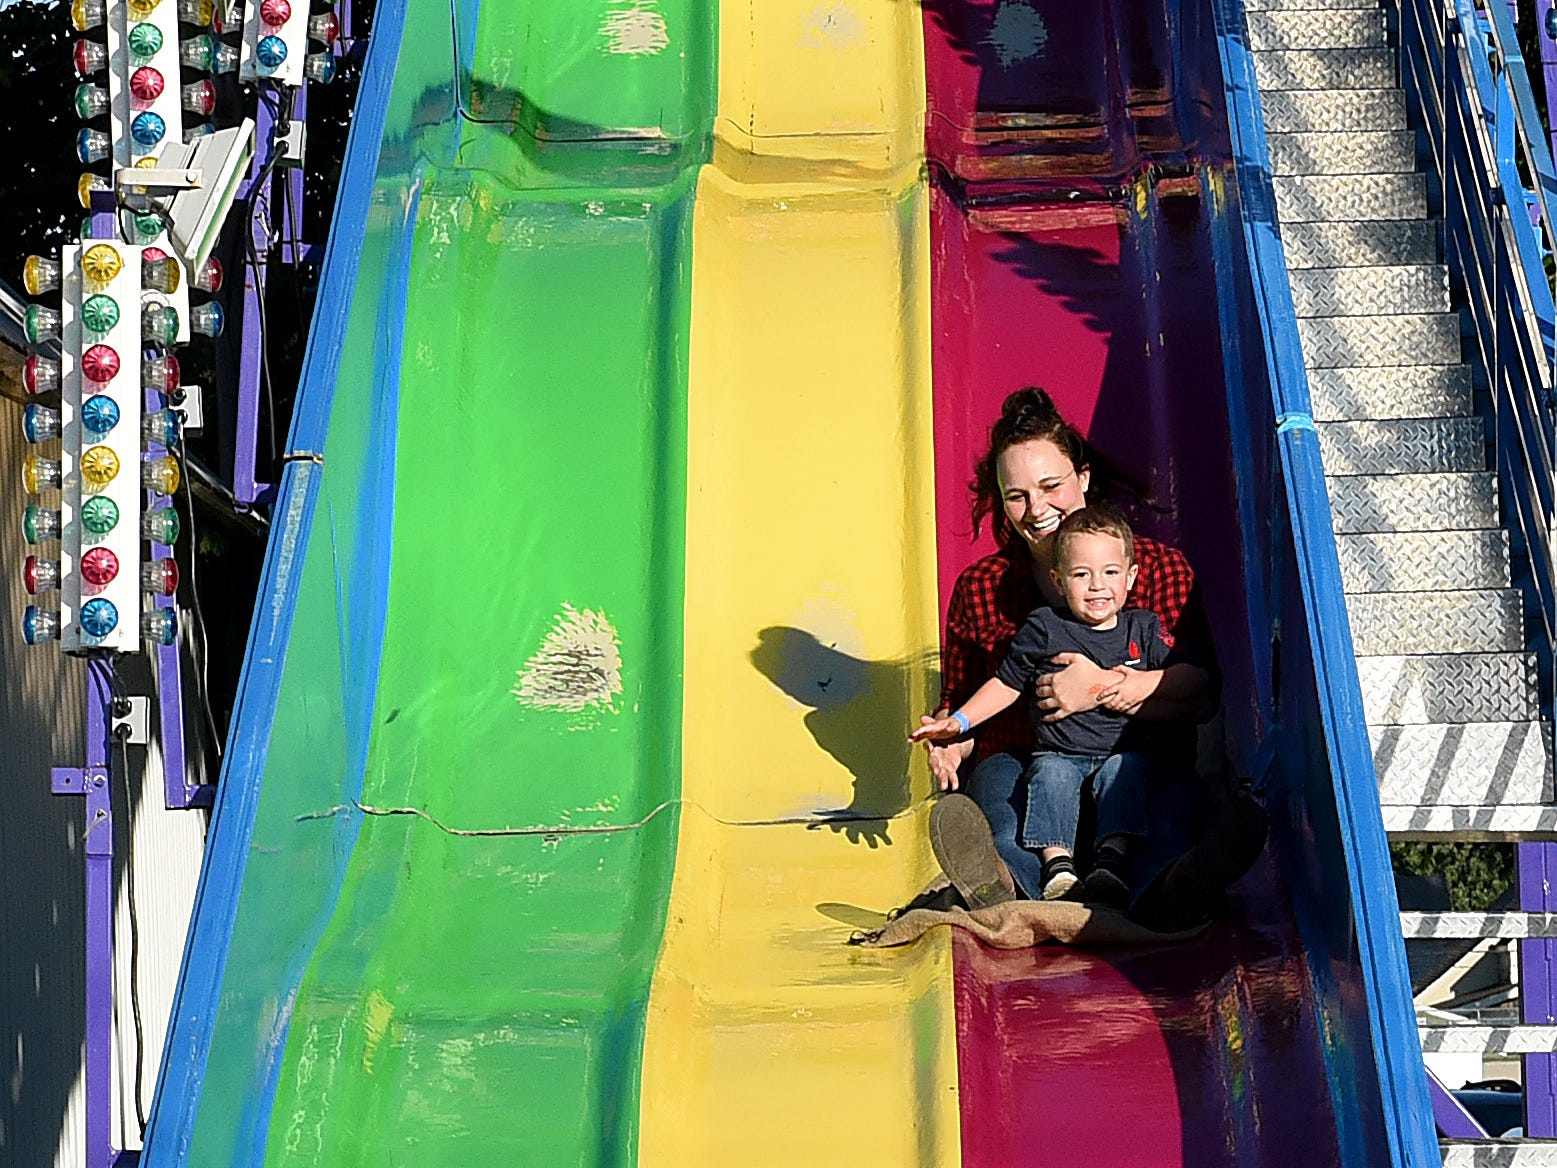 Kayla Mizer goes down the giant slide with son Cooper Mason at the Coshocton County Fair on Friday, Sept. 28, 2018.